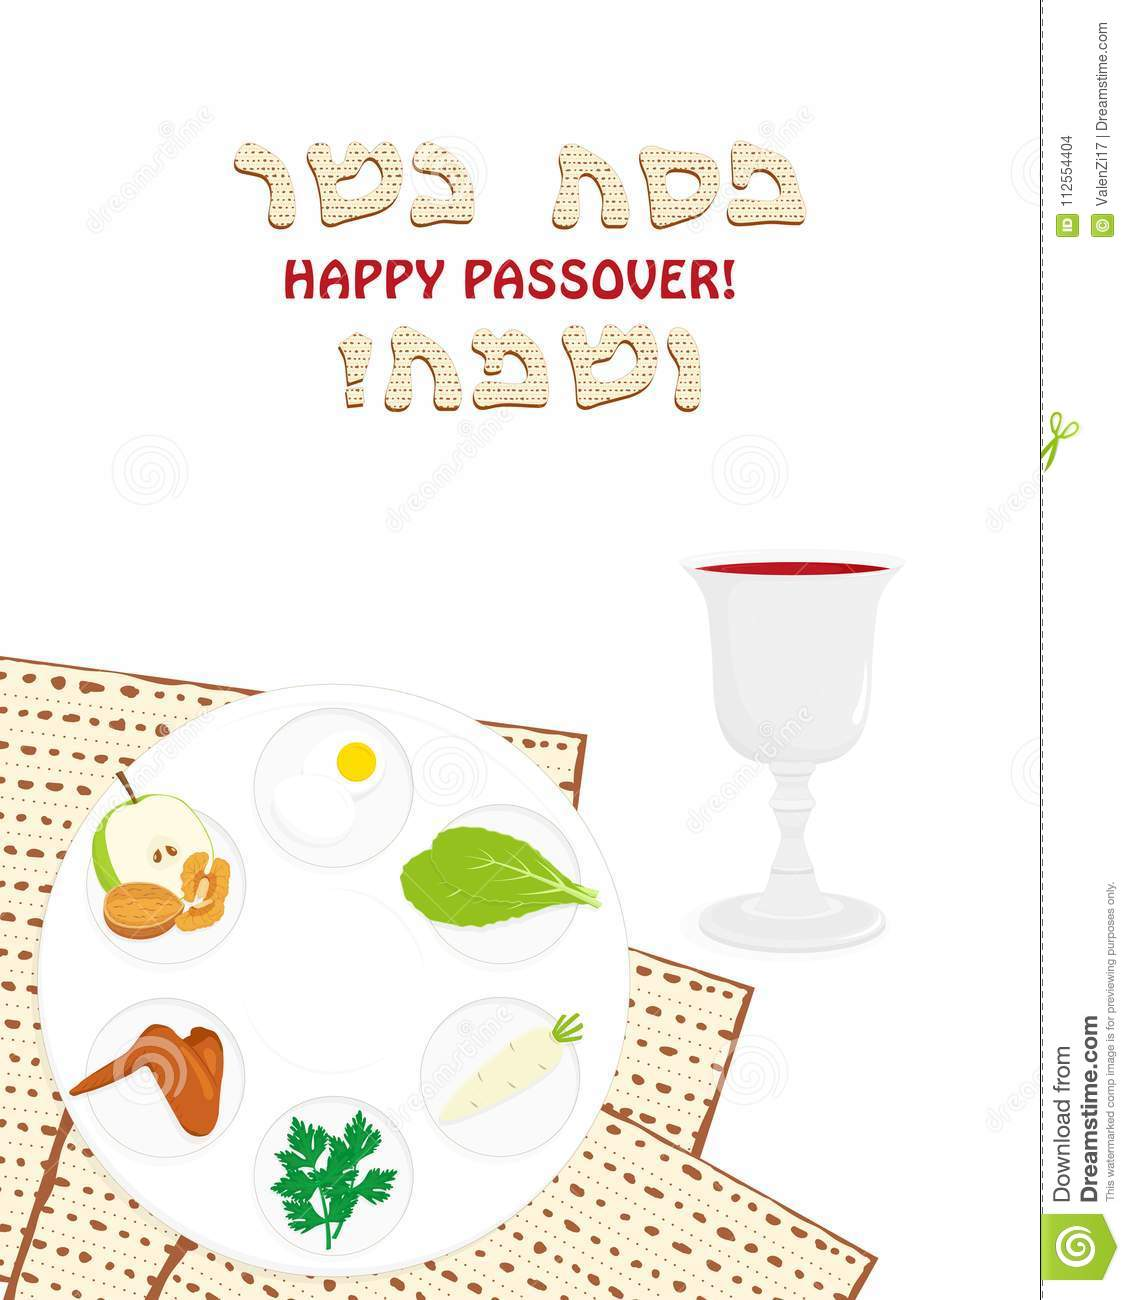 Passover Seder Plate Matzah And Wine Cup Stock Illustration